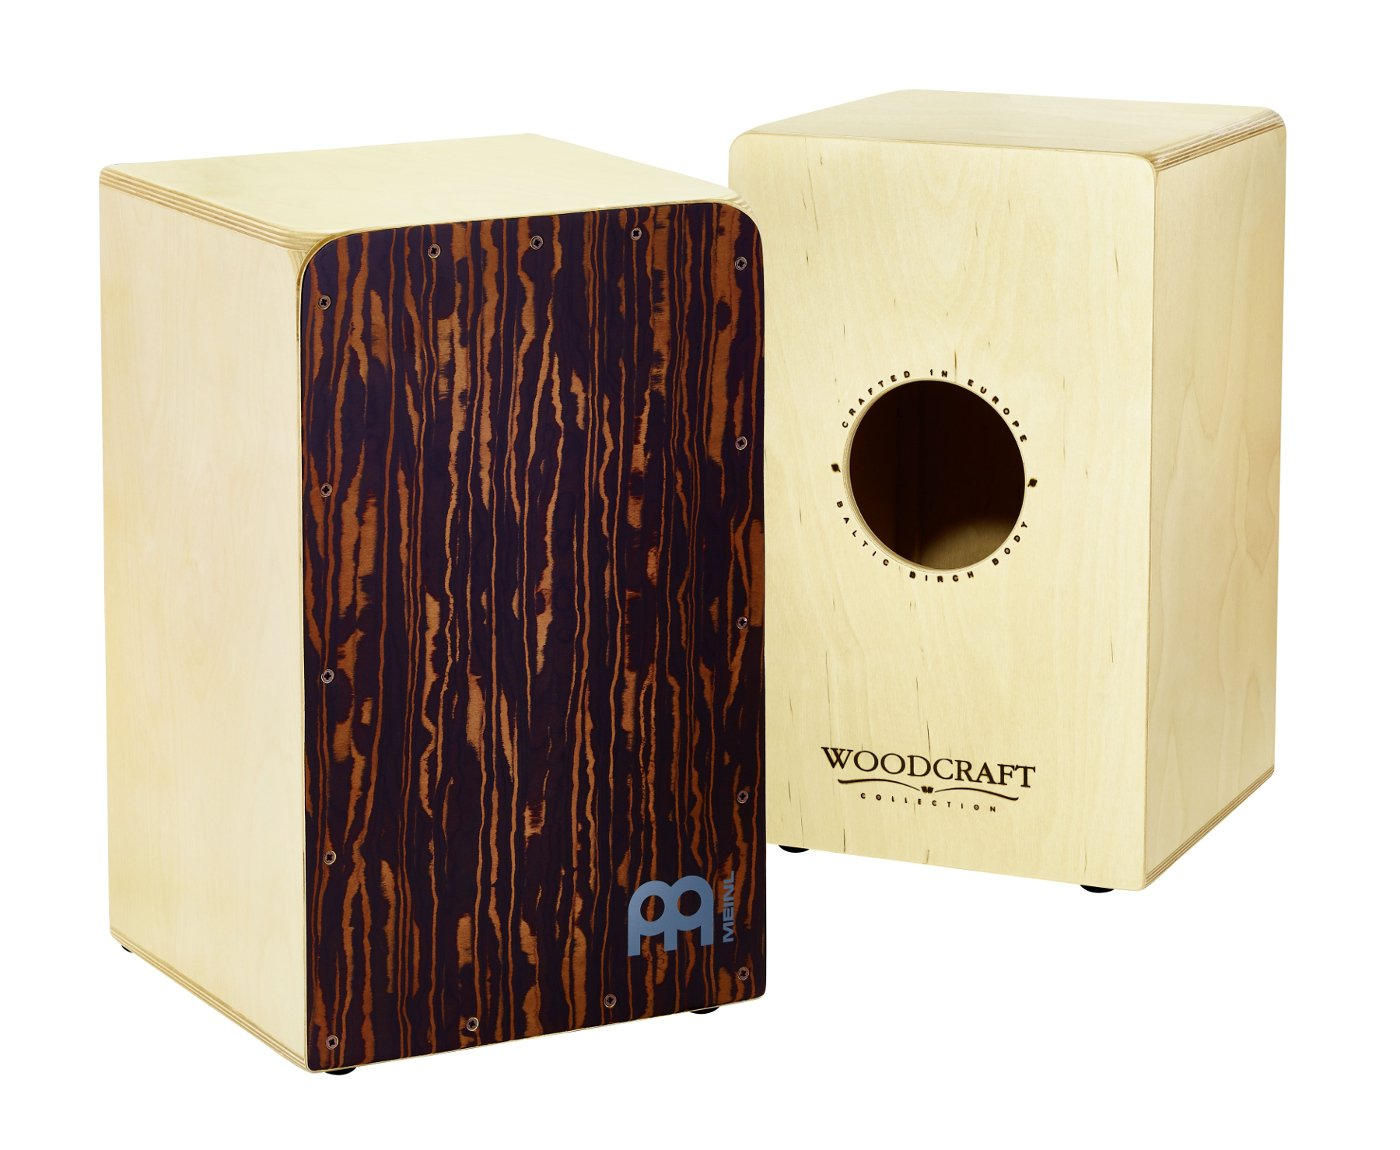 Woodcraft Series Cajon, Striped Boreas Front Plate